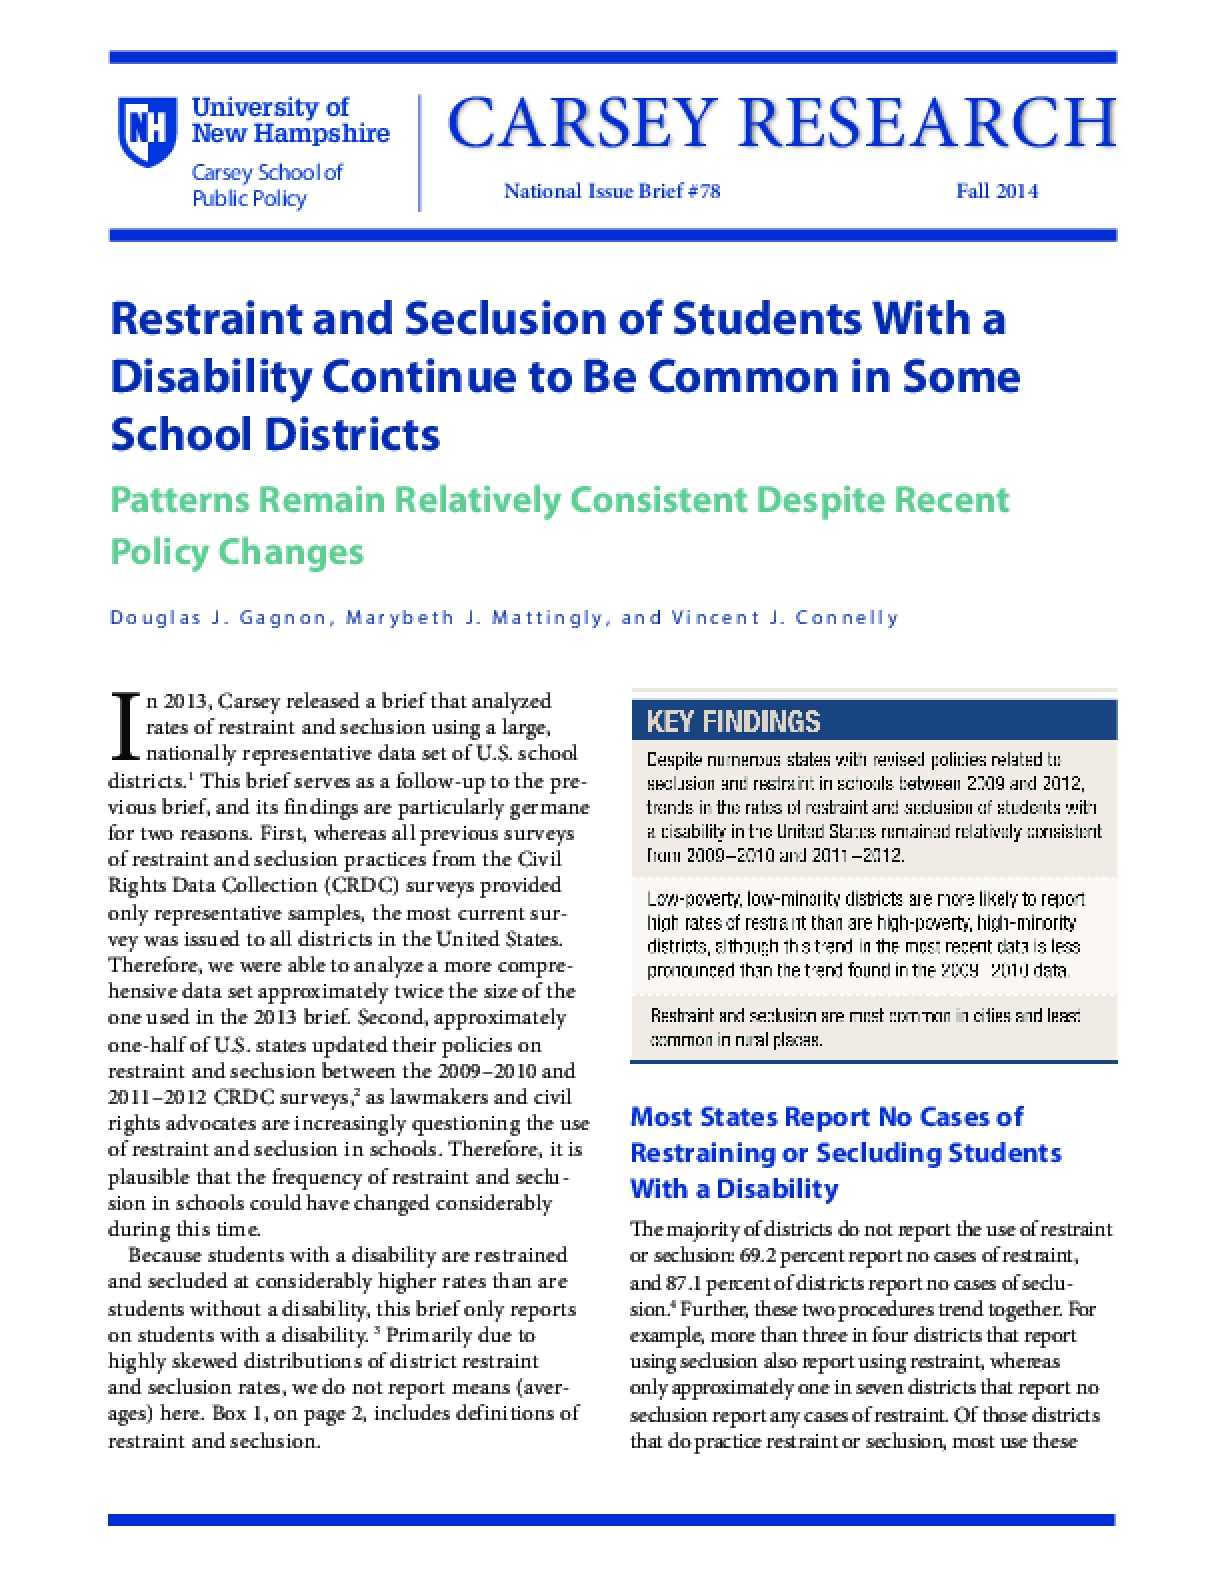 Restraint and Seclusion of Students With a Disability Continue to Be Common in Some School Districts Patterns Remain Relatively Consistent Despite Recent Policy Changes